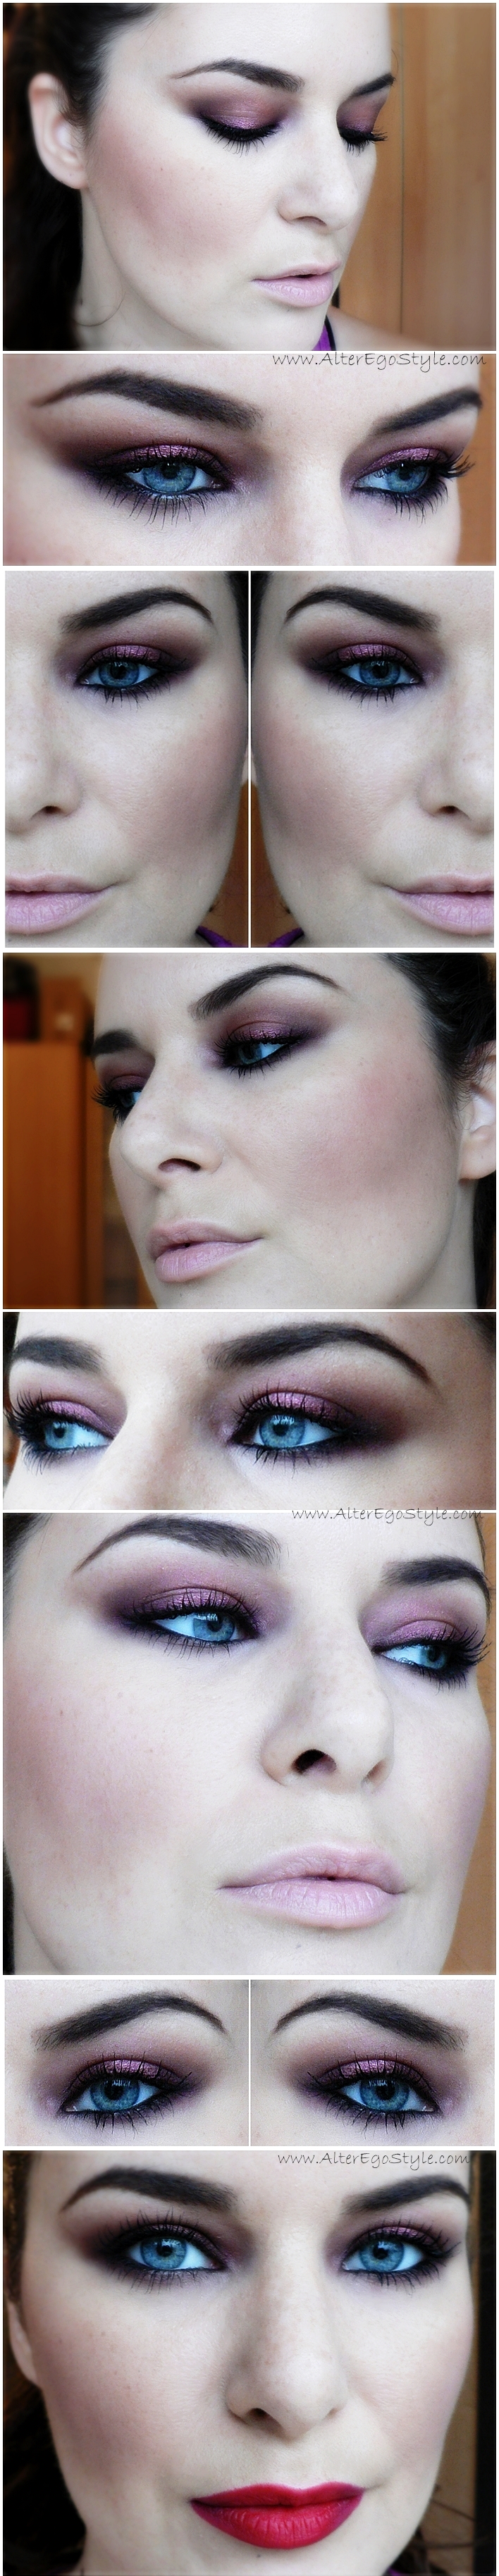 makeup-fall-2013-burgundy-eyes